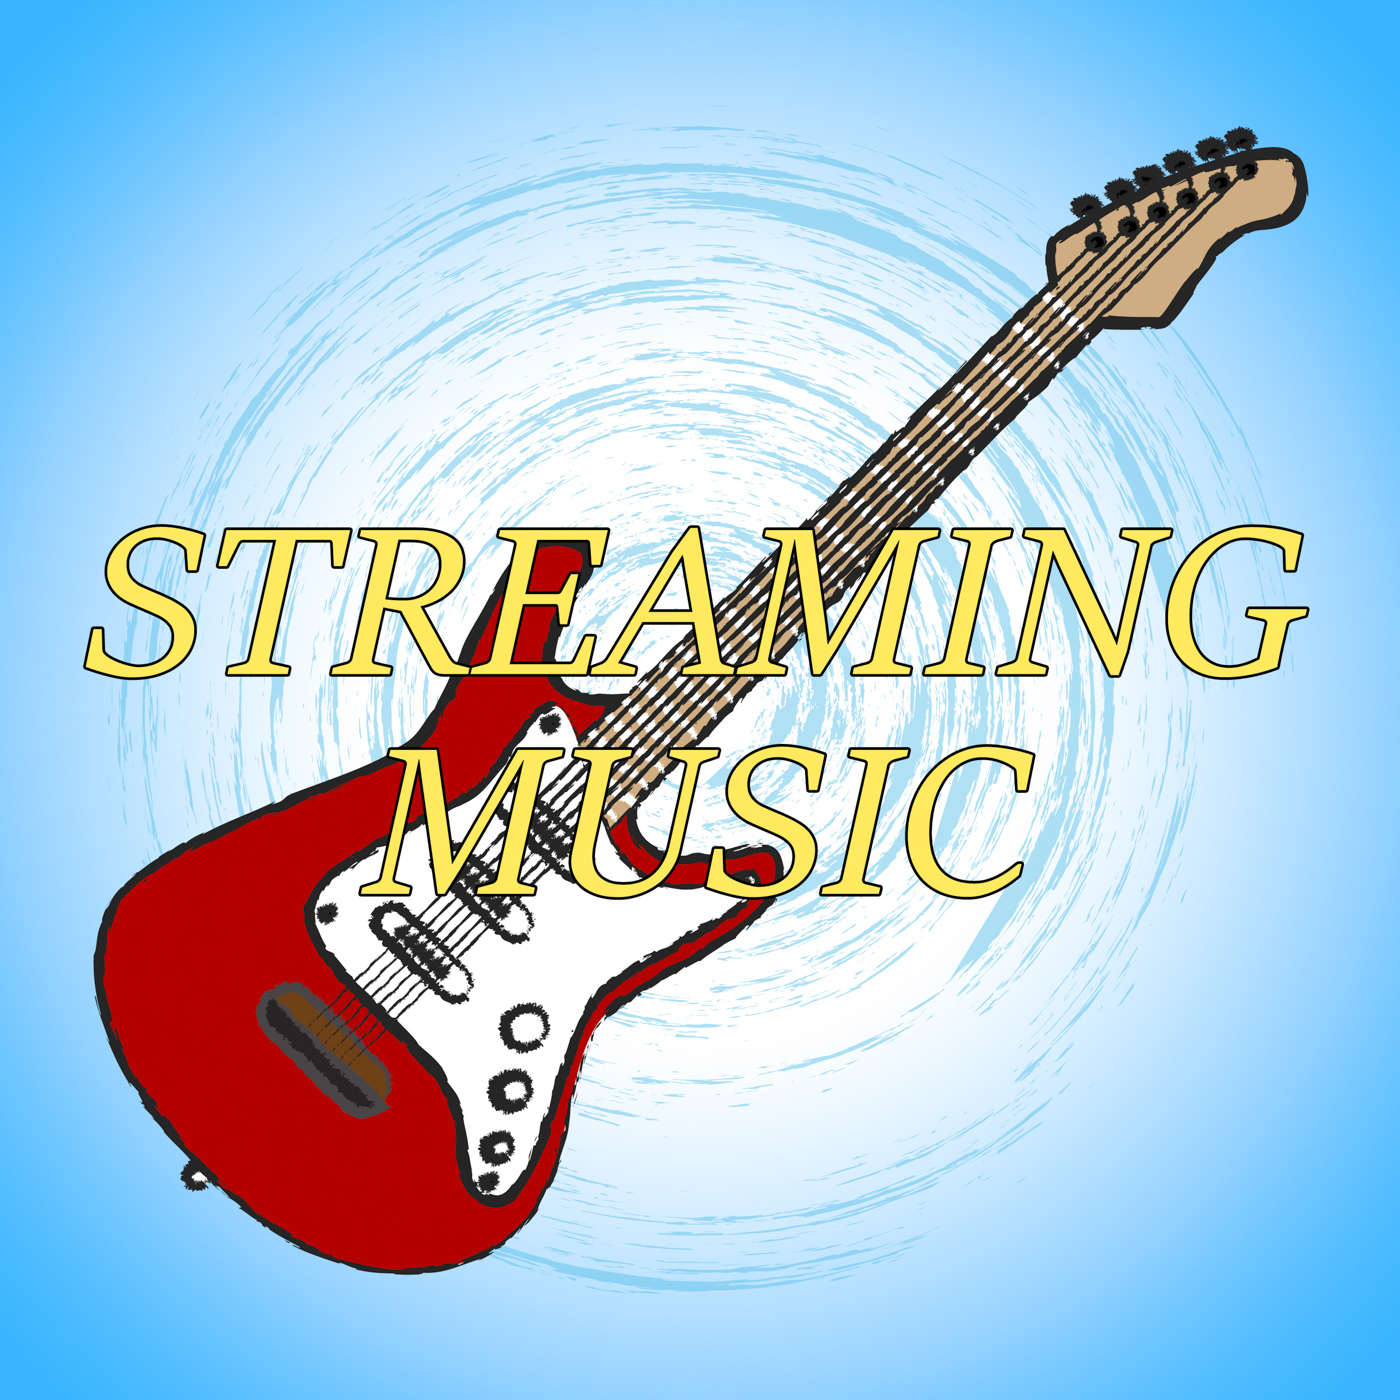 Streaming Music Means Sound Track And Acoustic, Acoustic, Soundtrack, Webcasting, Track, HQ Photo